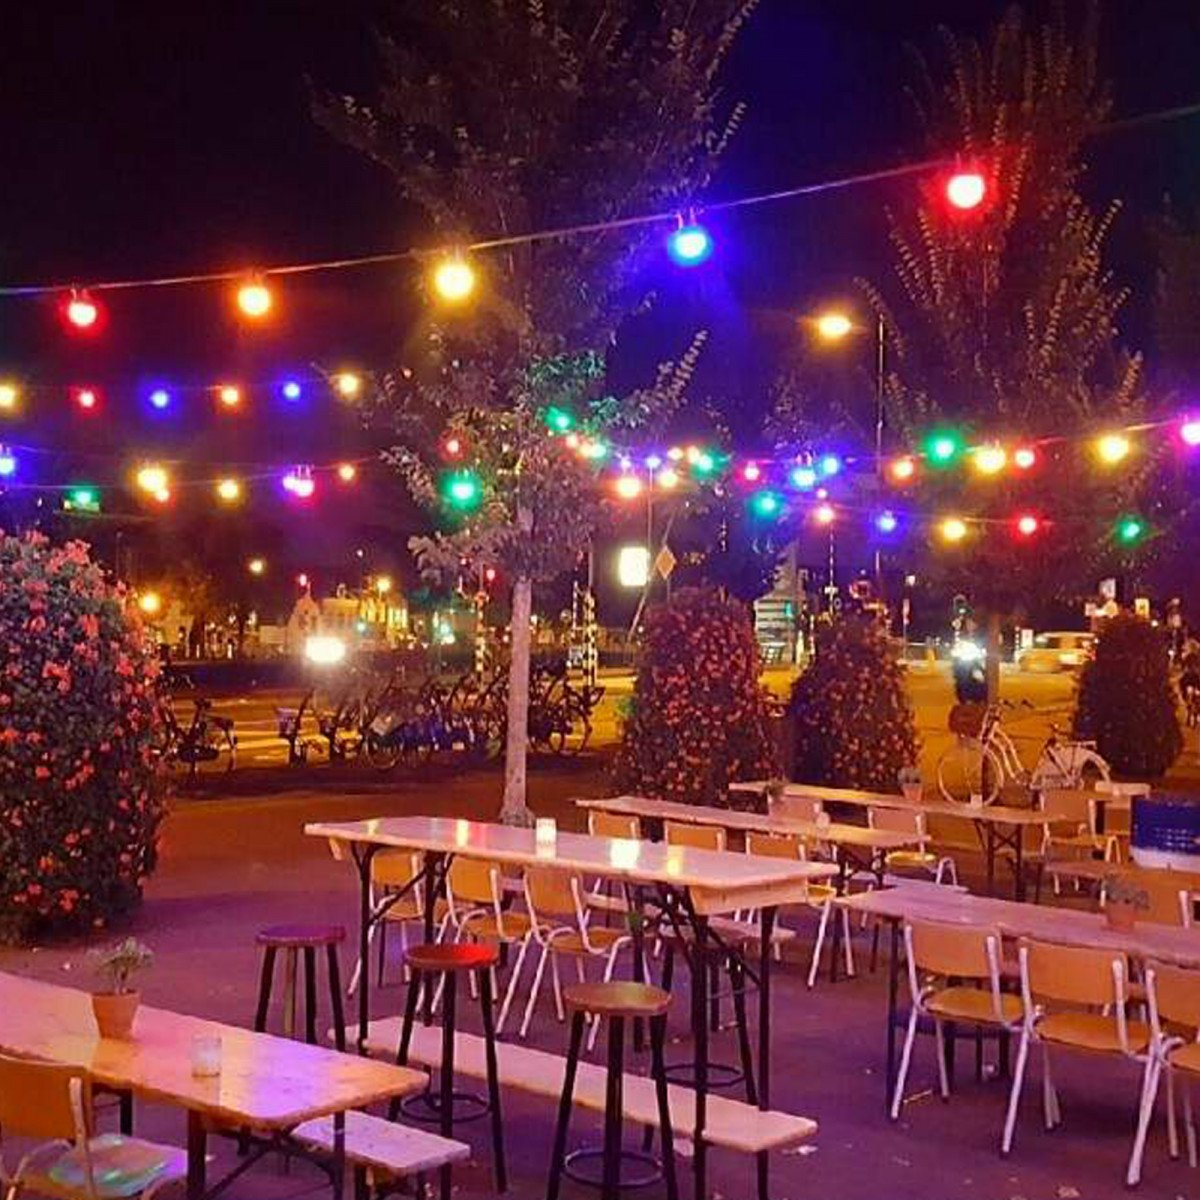 Feestverlichting LED Patio 30 kleur - 30 meter / 36 fittingen